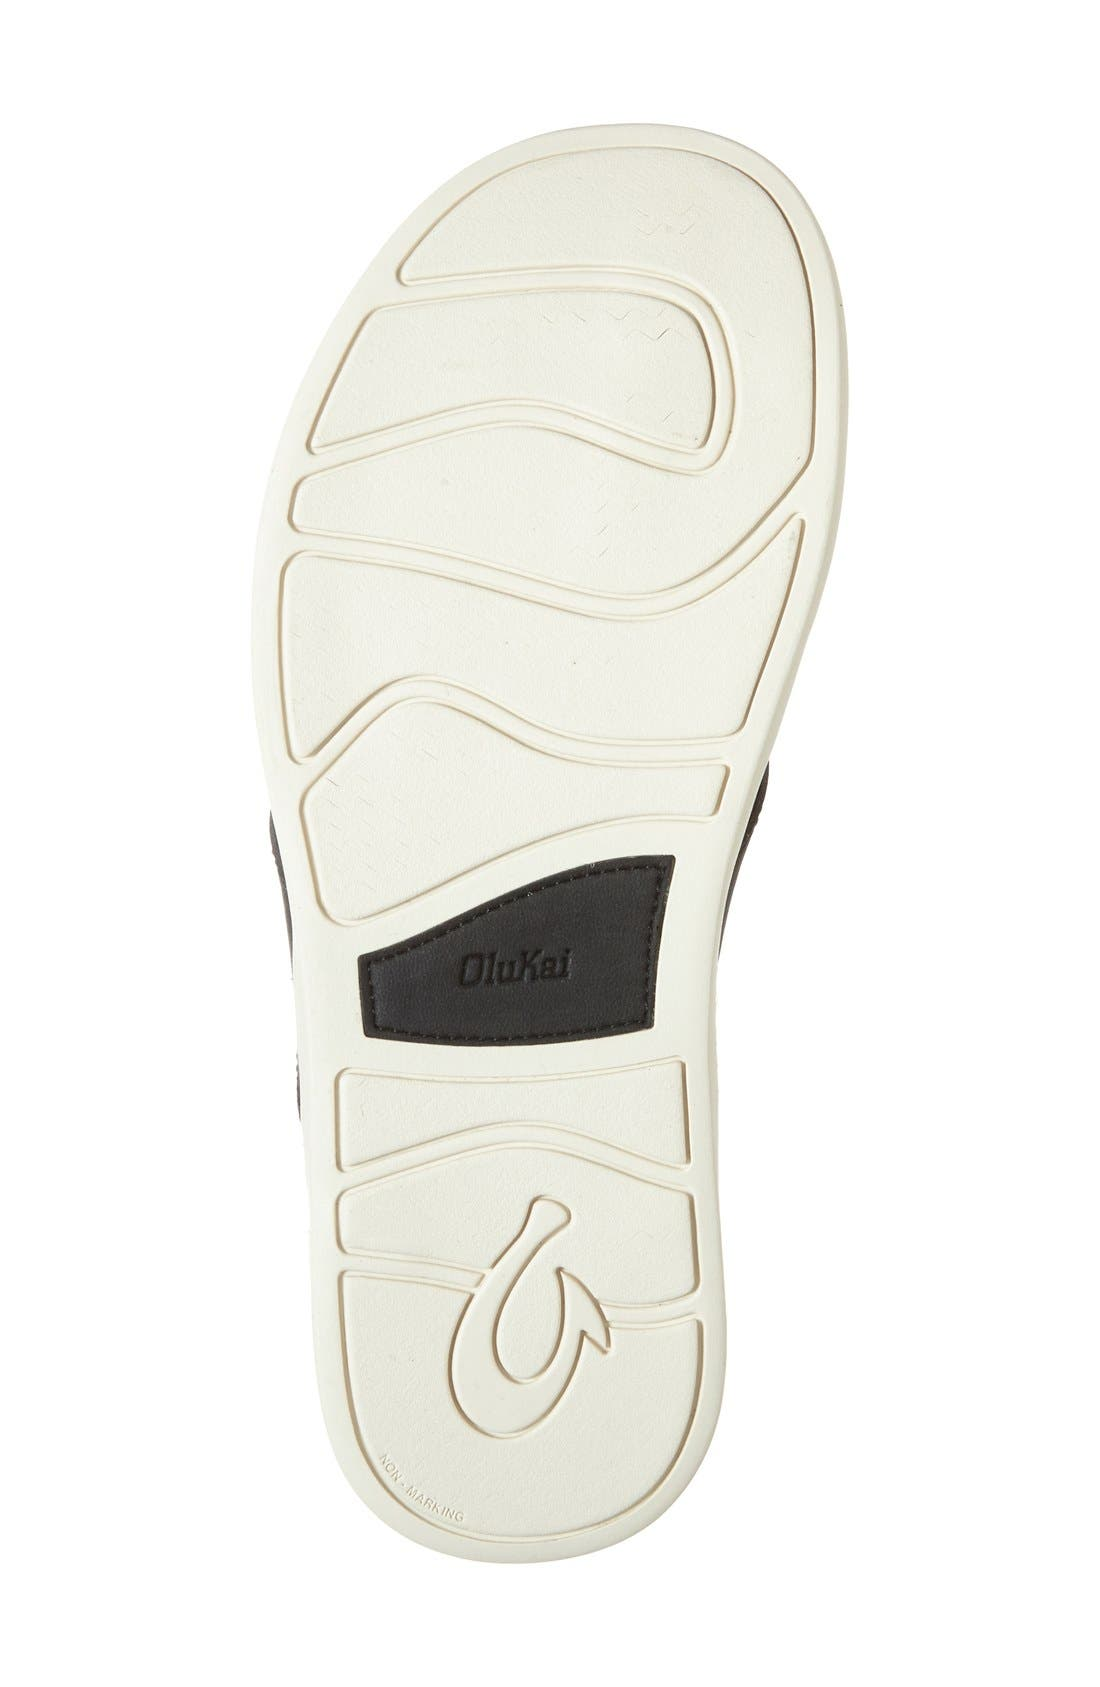 OLUKAI,                             'Holona' Flip Flop,                             Alternate thumbnail 4, color,                             001